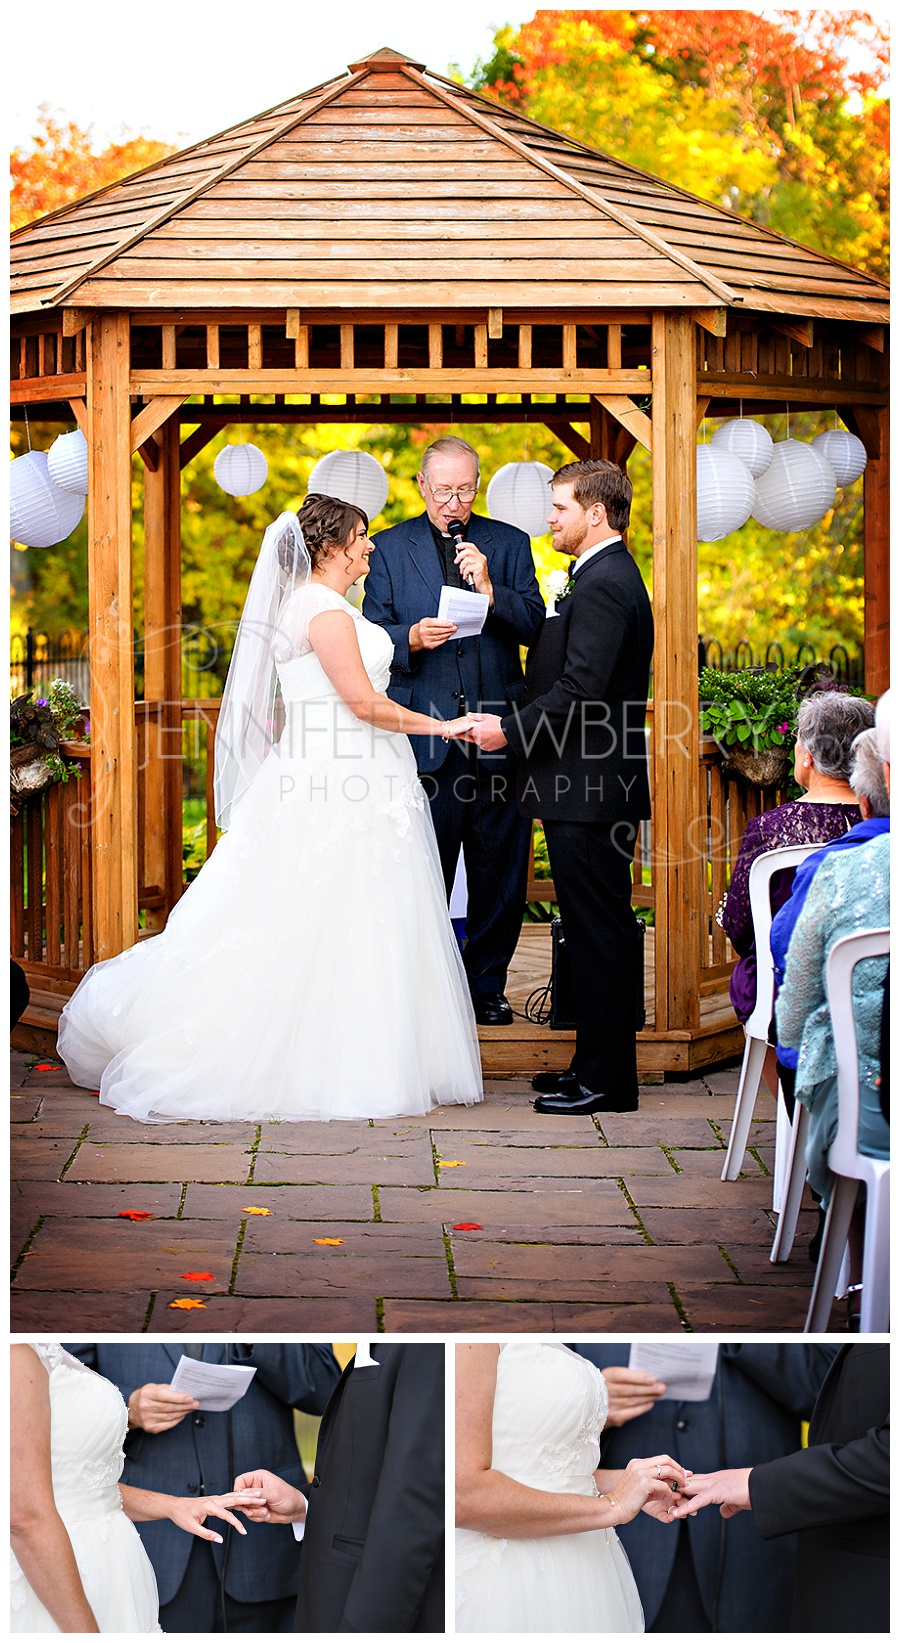 Milton wedding photos of an outdoor ceremony at The Grand Chalet by www.jnphotography.ca @filemanager